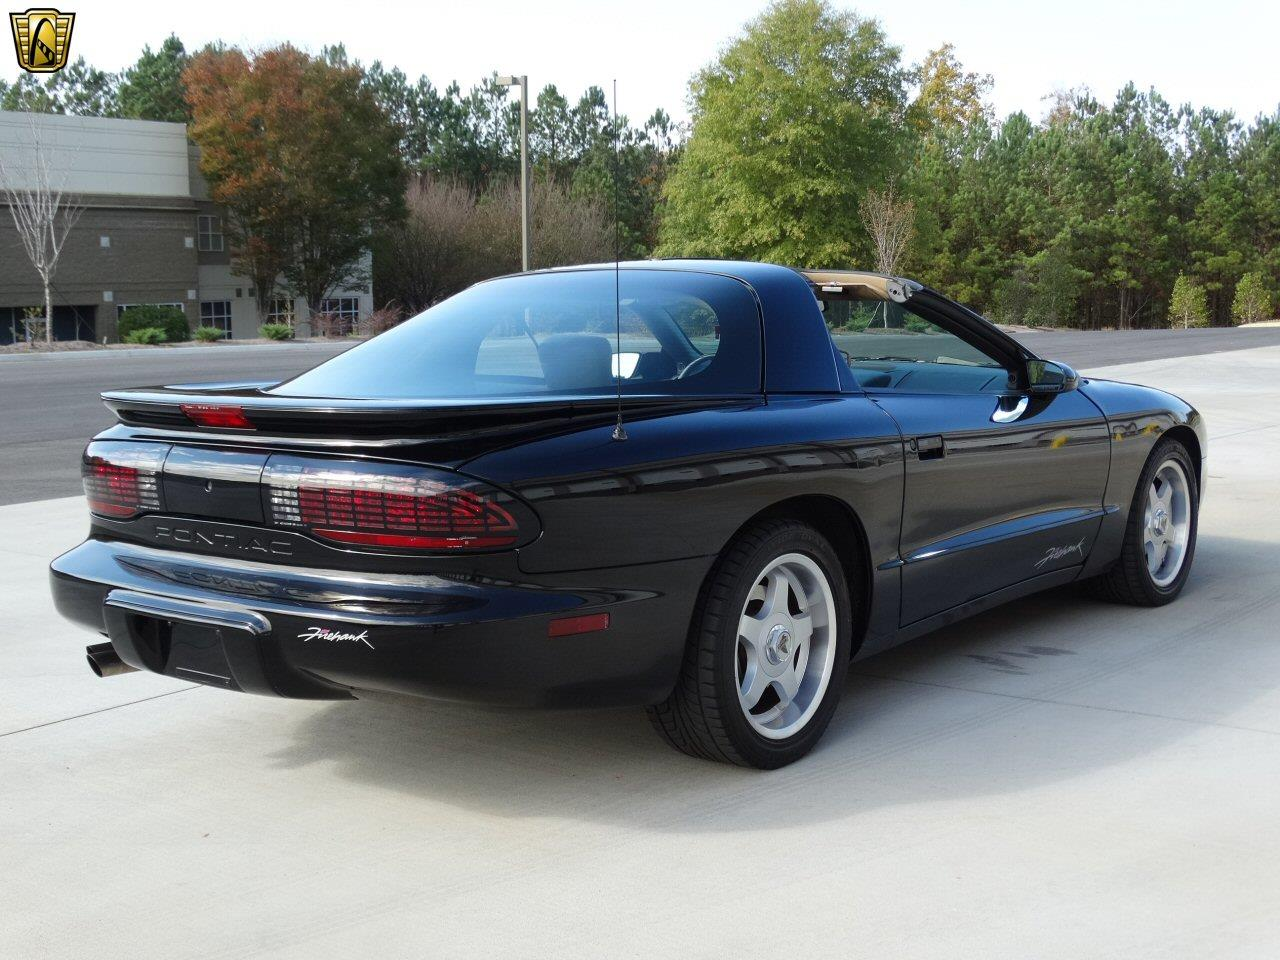 Large Picture of 1994 Pontiac Firebird located in Alpharetta Georgia - $20,995.00 - KF4C